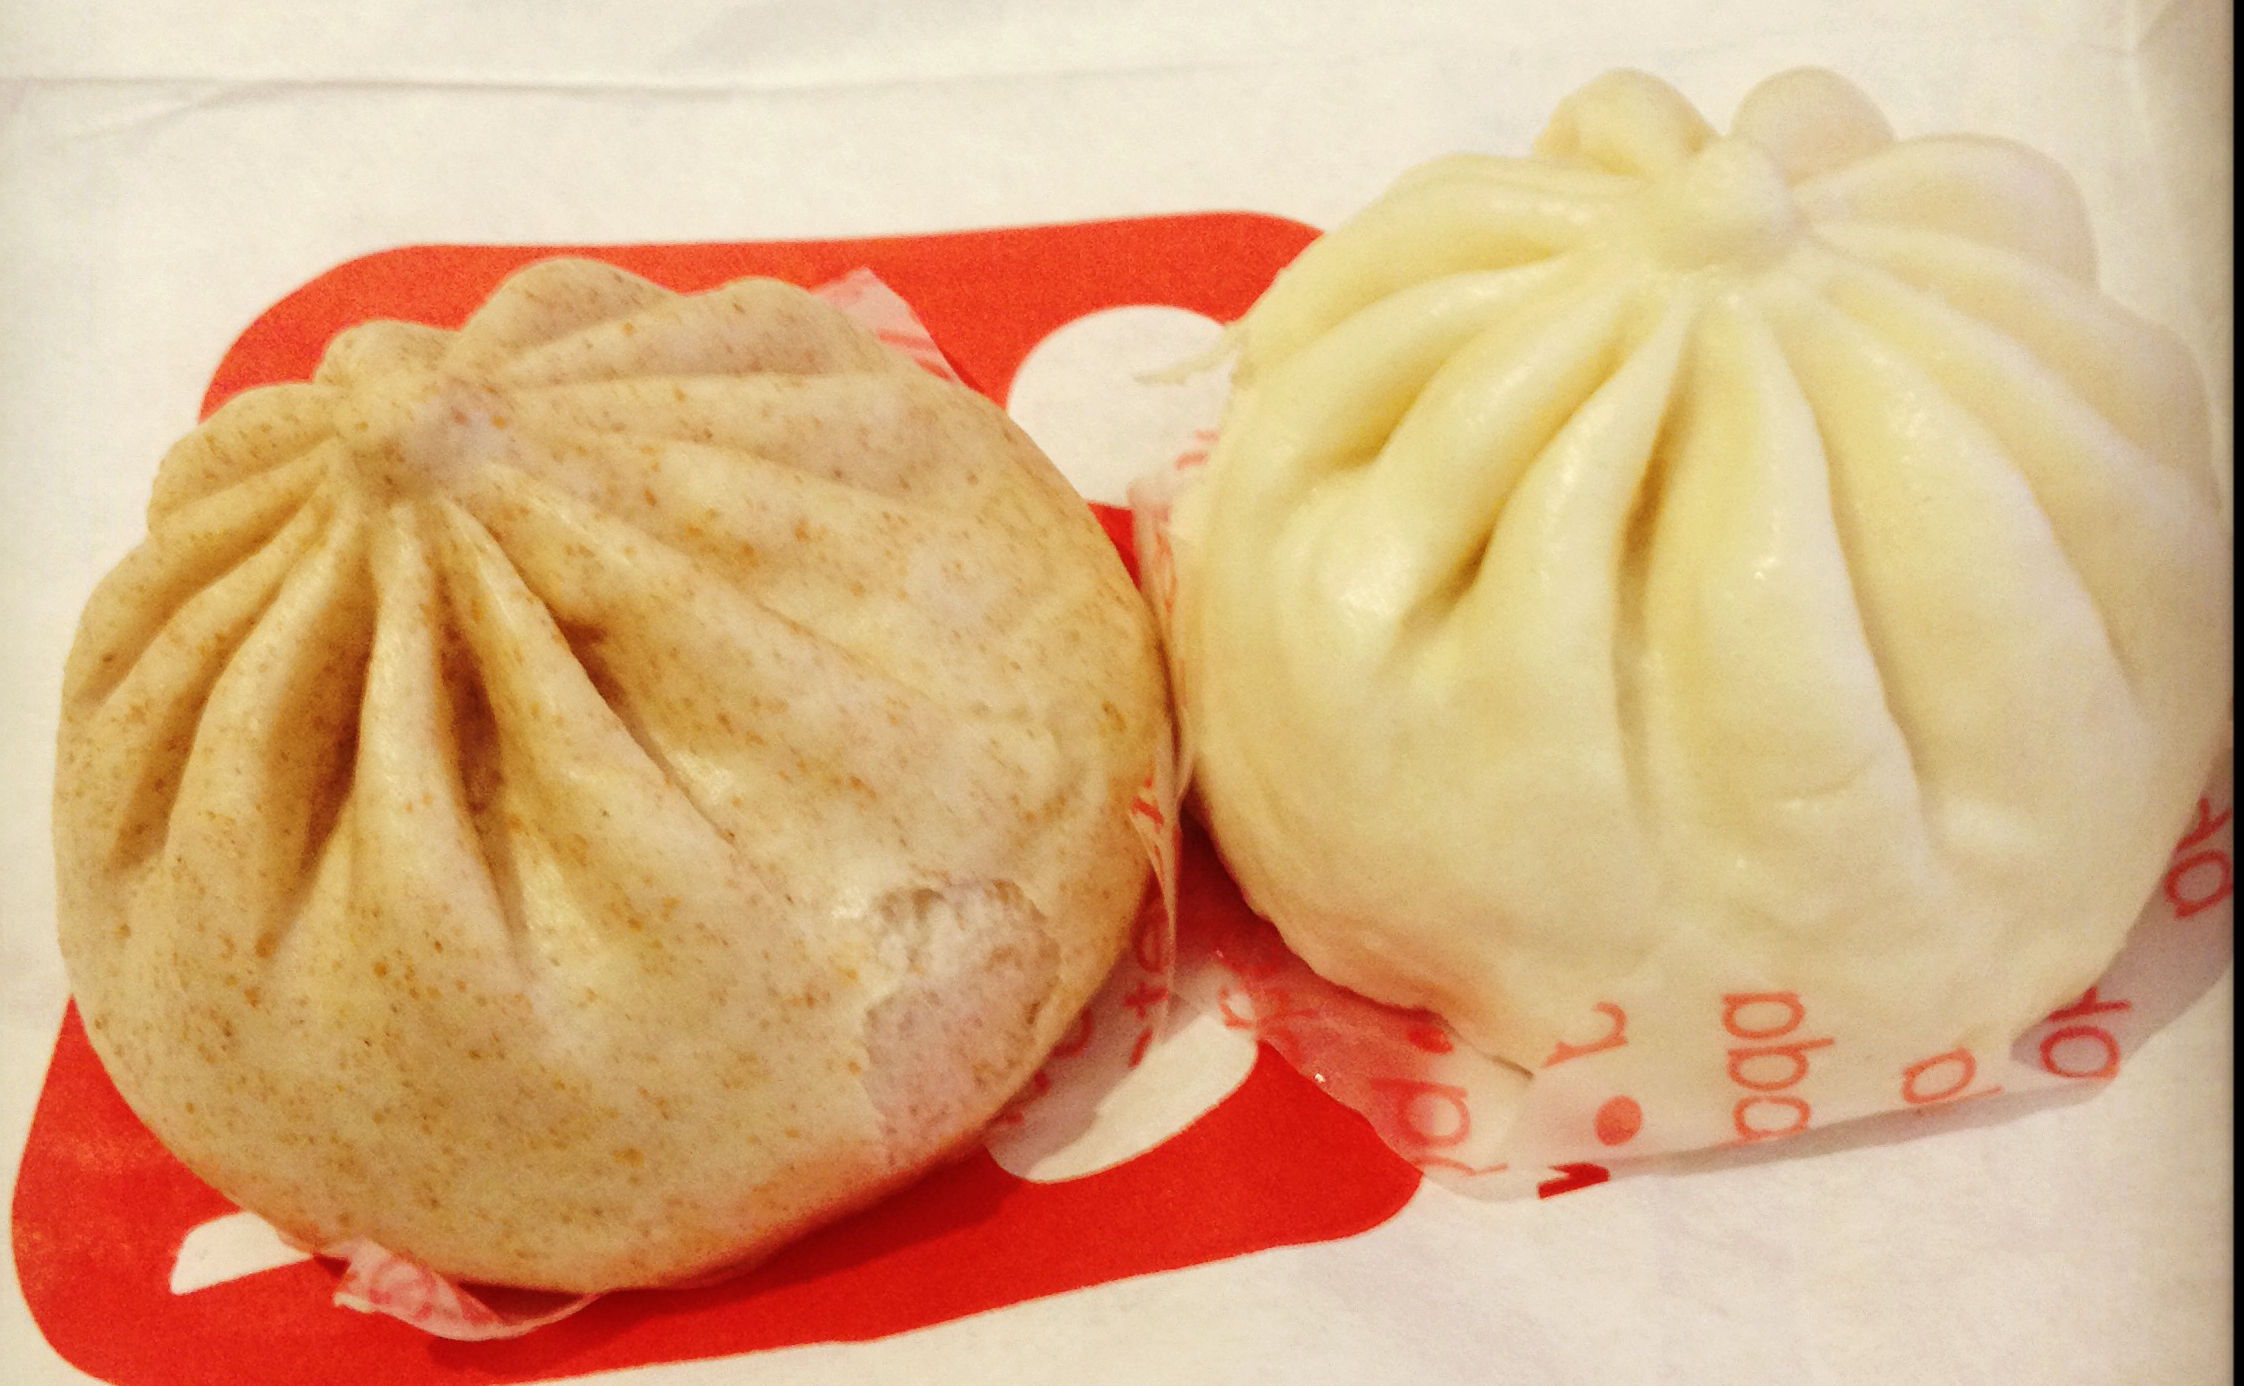 Wow Bao Brings Back The Automat The Search For The World 39 S Best Dumplings